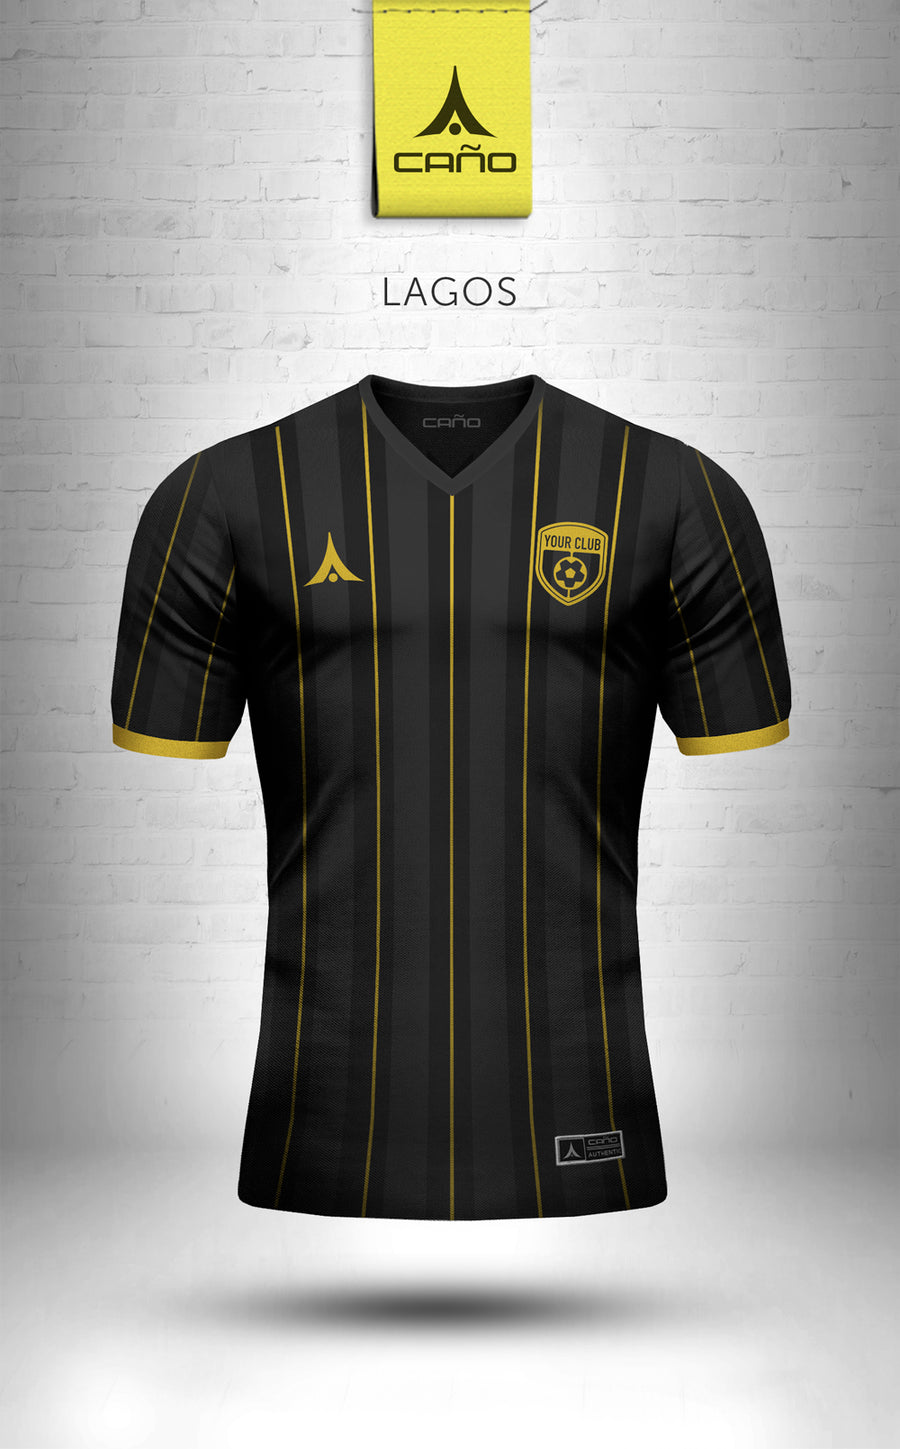 Lagos in black/gold